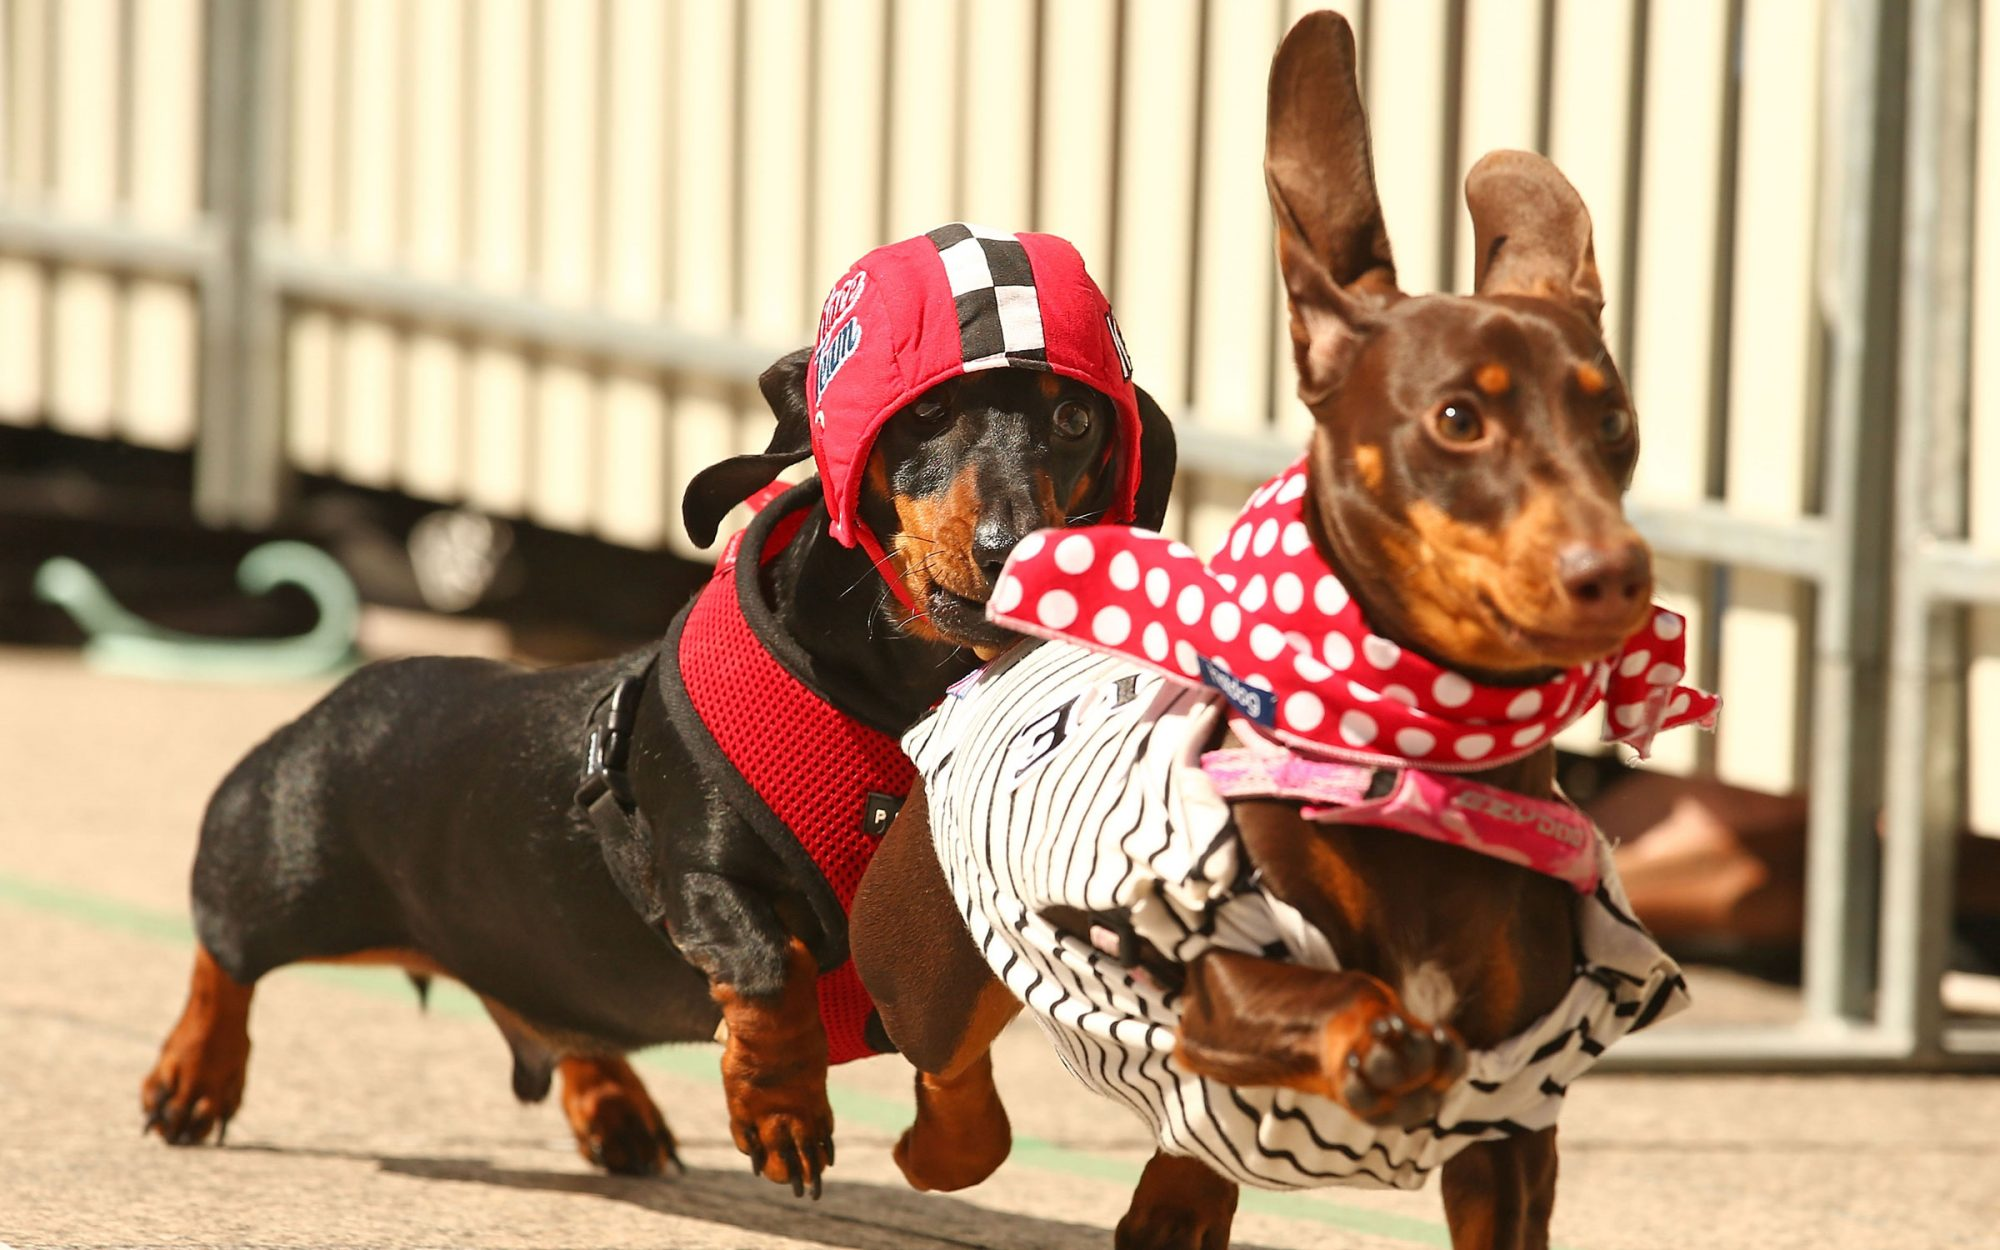 Dachshunds in Costumes. Racing. Really.